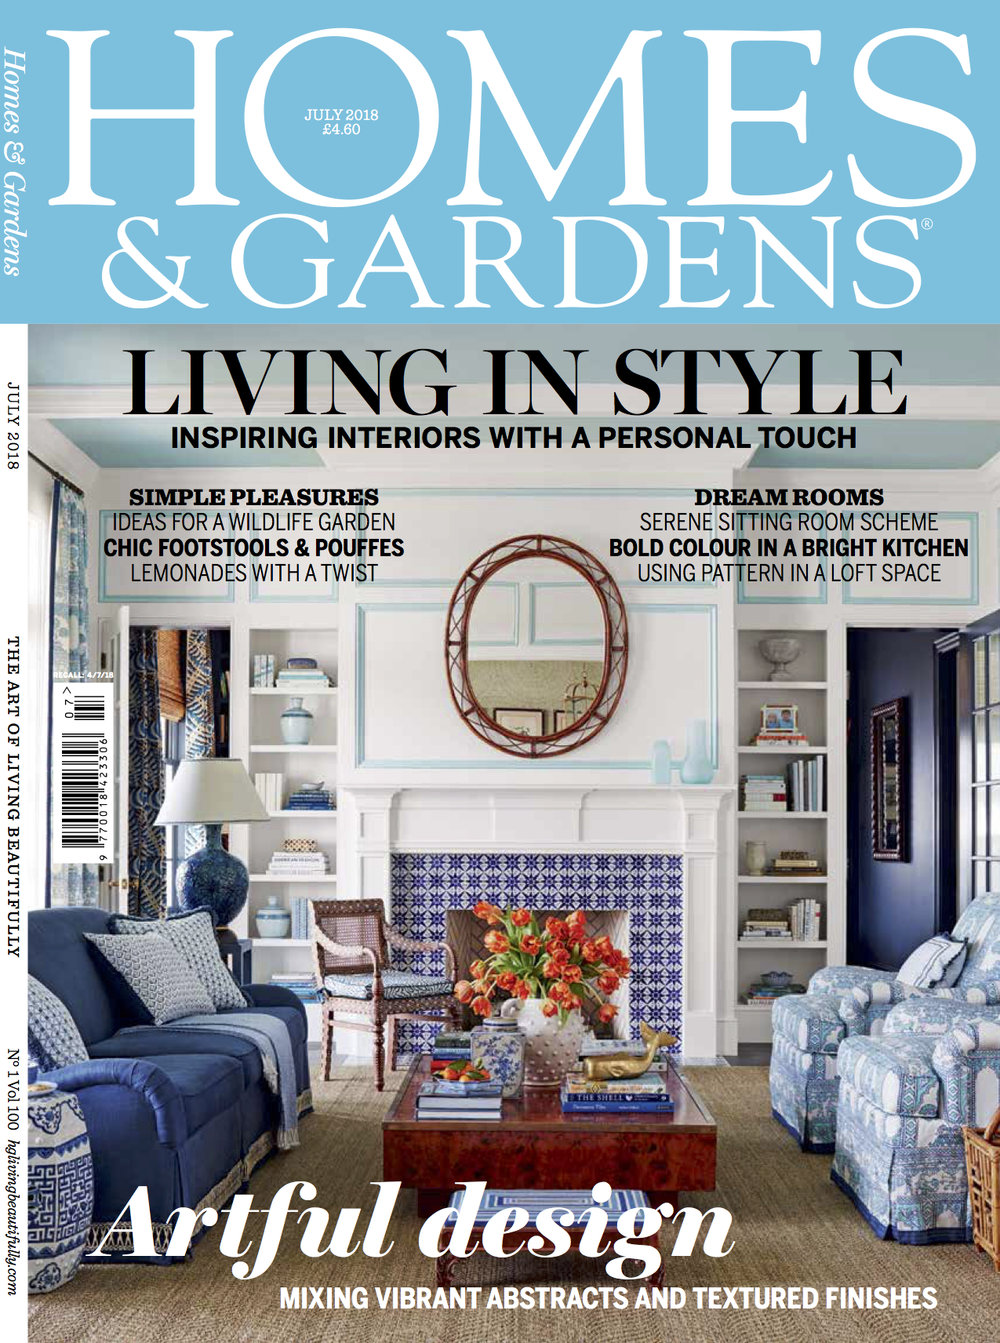 Homes & Gardens - July 2018